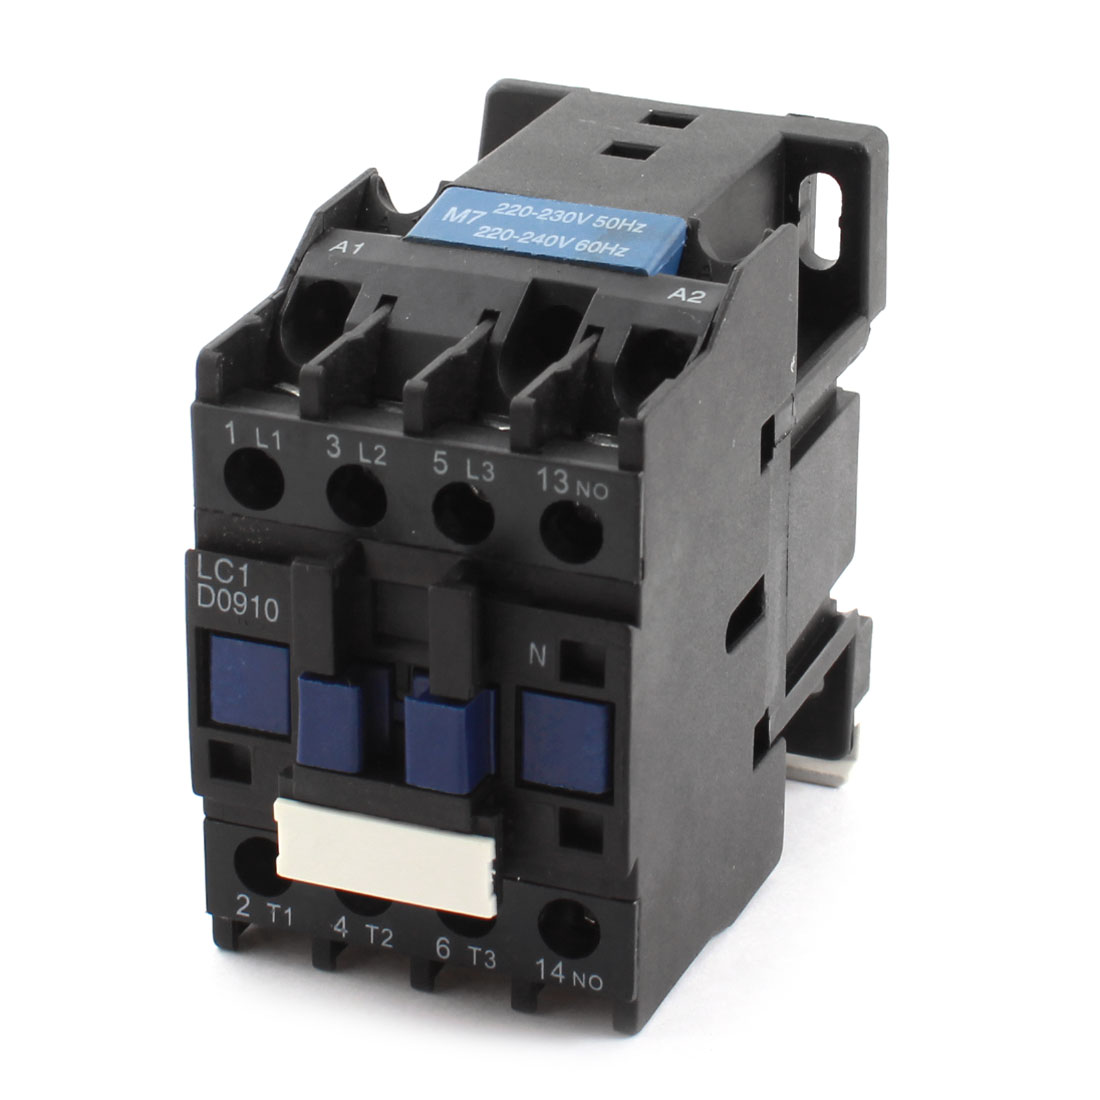 AC220-230V AC220-240V Coil 35mm DIN Rail Mounting 10 Screw Terminals 3 Poles NO Auxiliary Contact Power Contactor